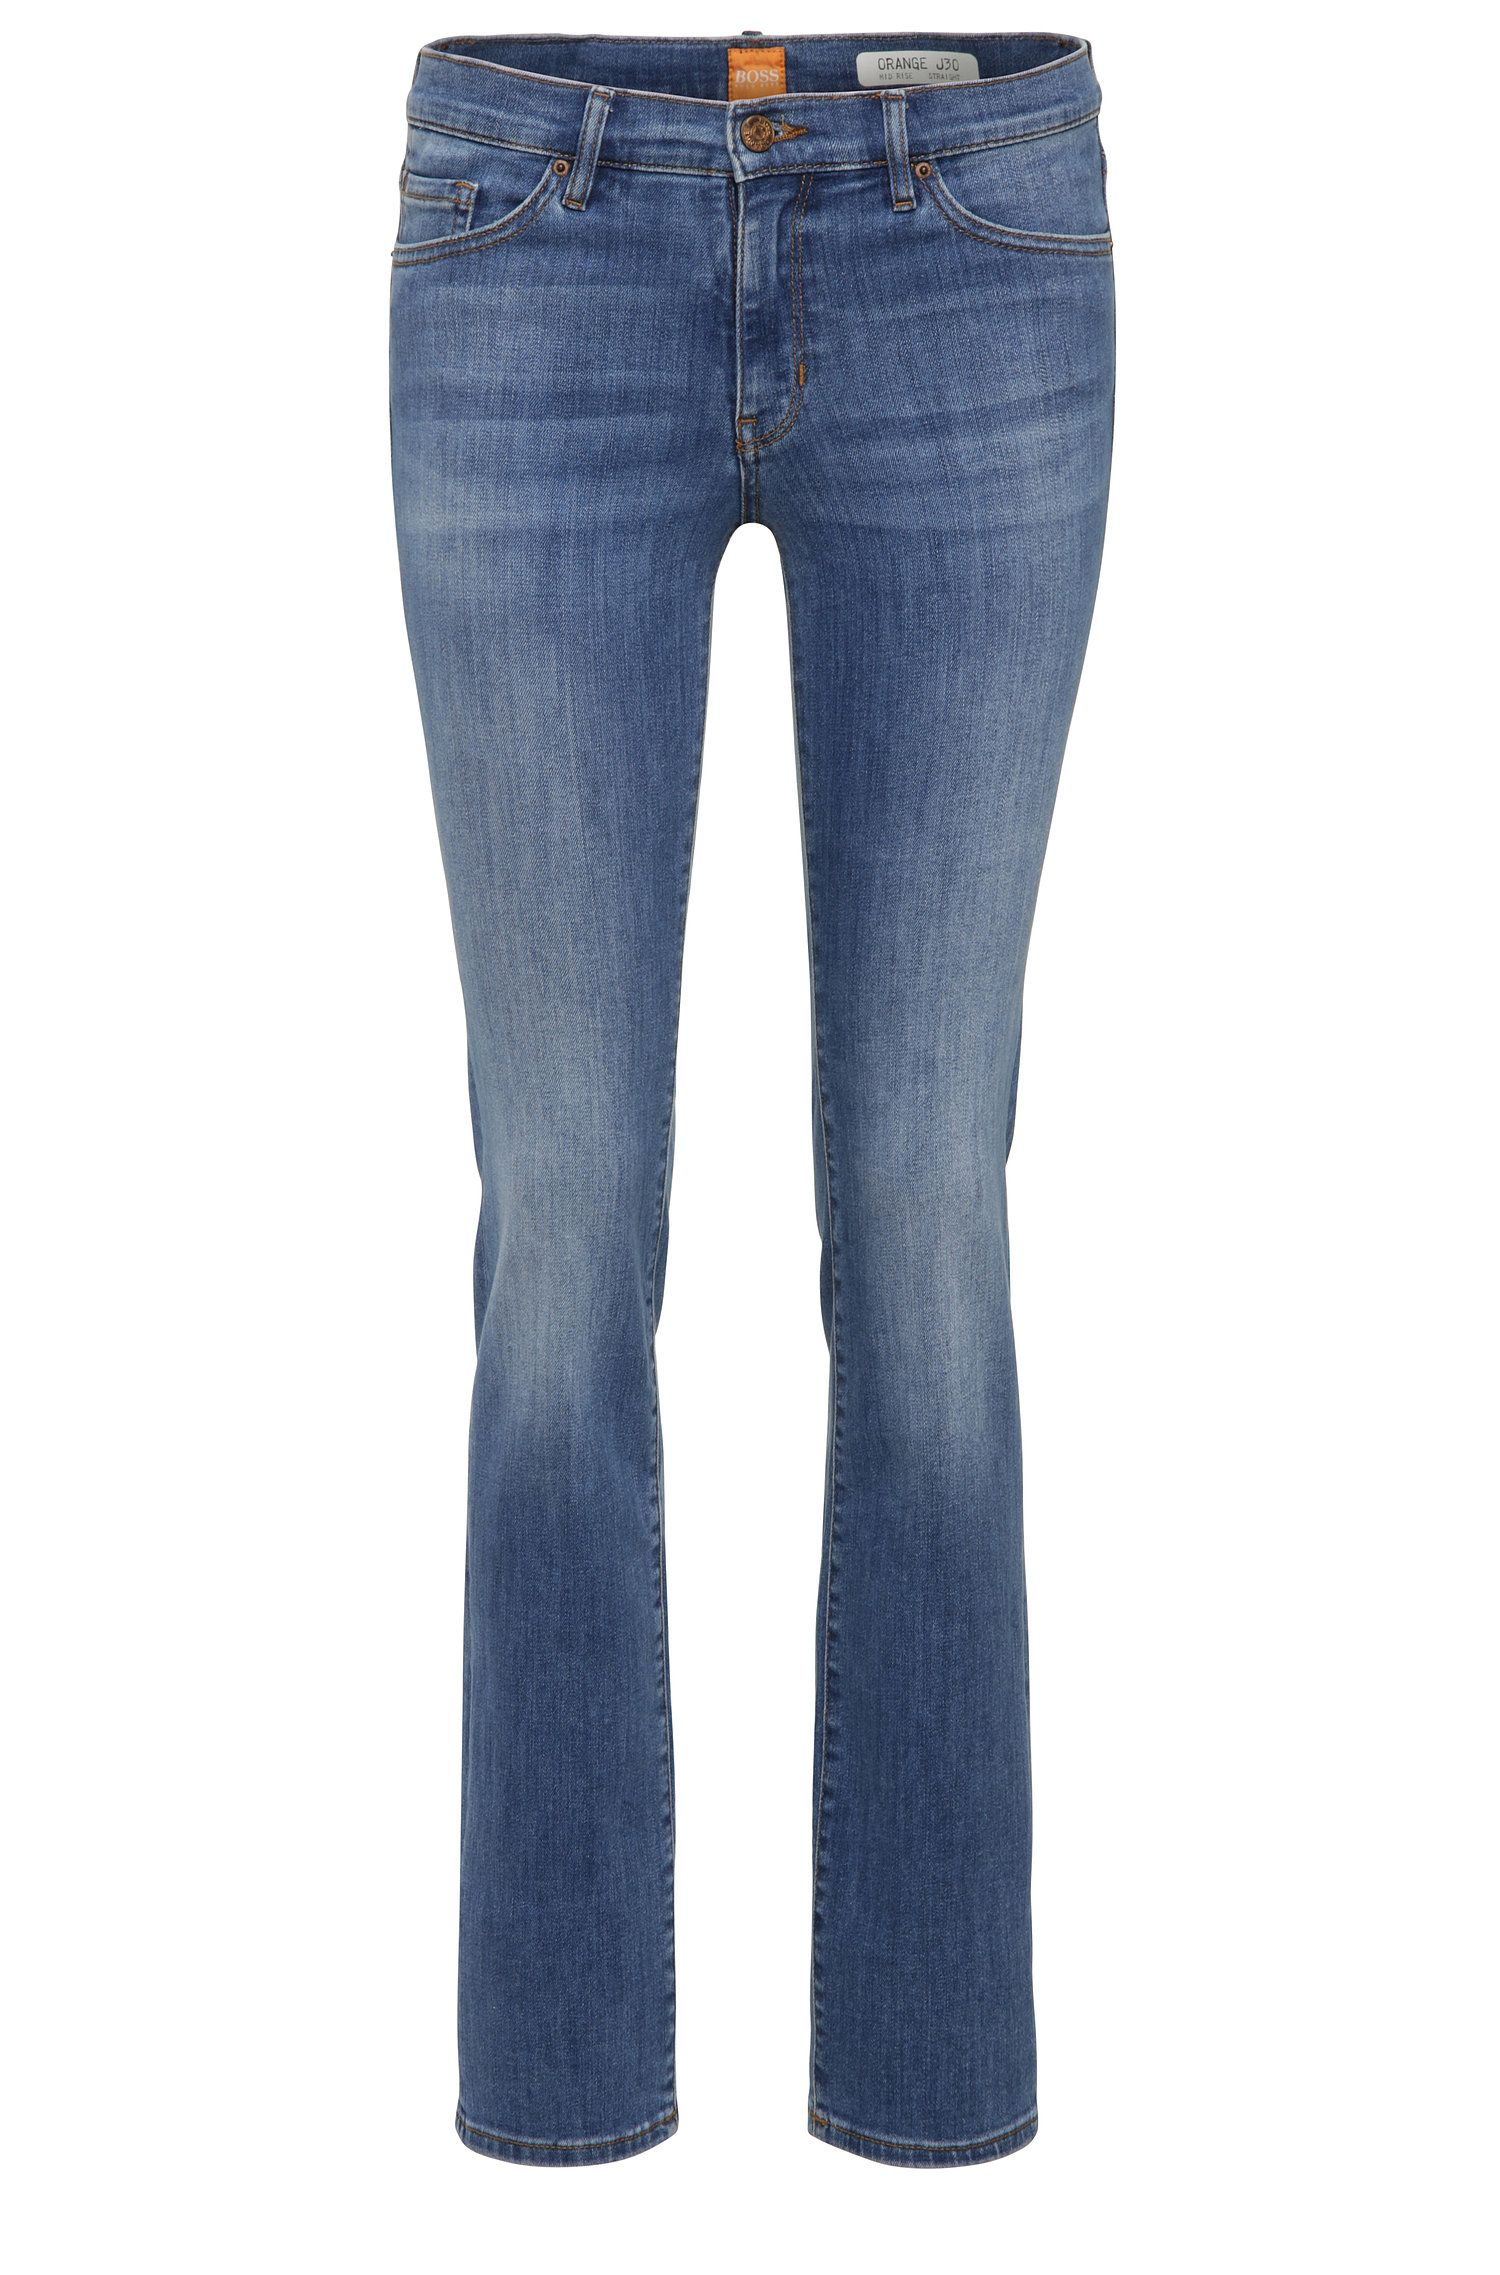 Jeans Slim Fit en coton mélangé extensible : « Orange J30 »